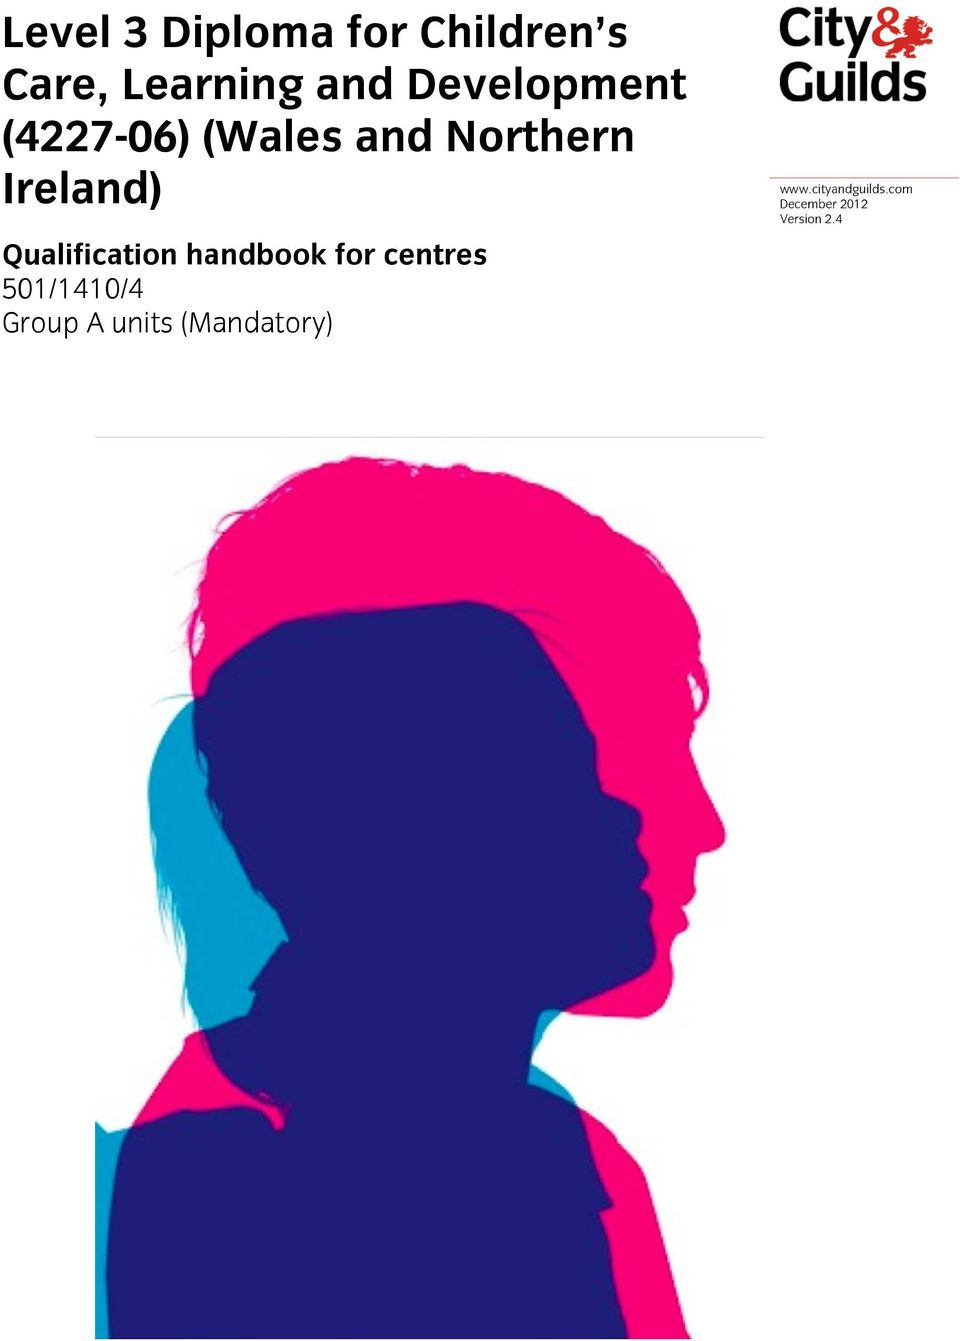 Qualification handbook for centres 501/1410/4 Group A